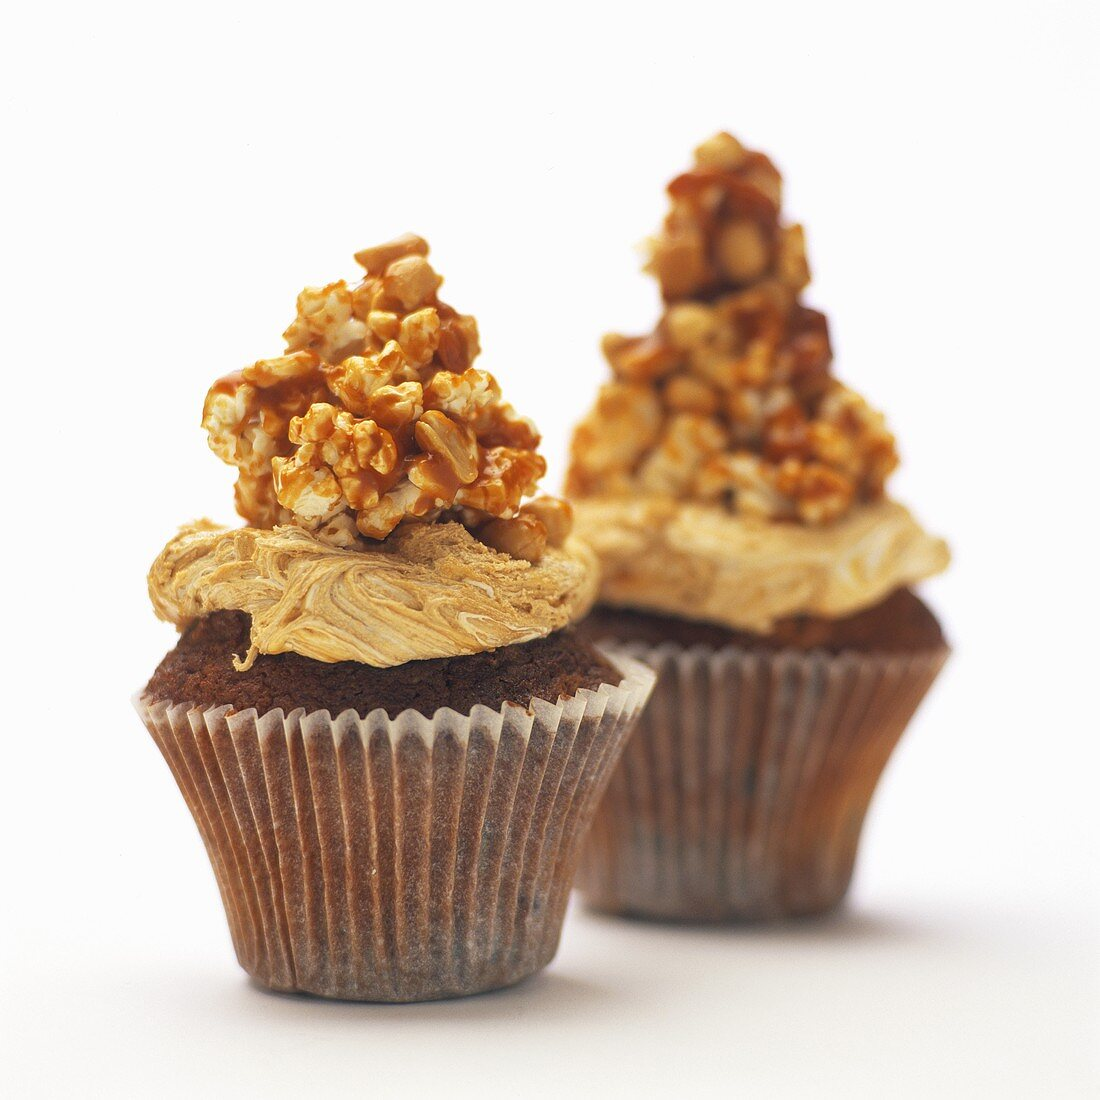 Peanut muffins with crispy nut topping